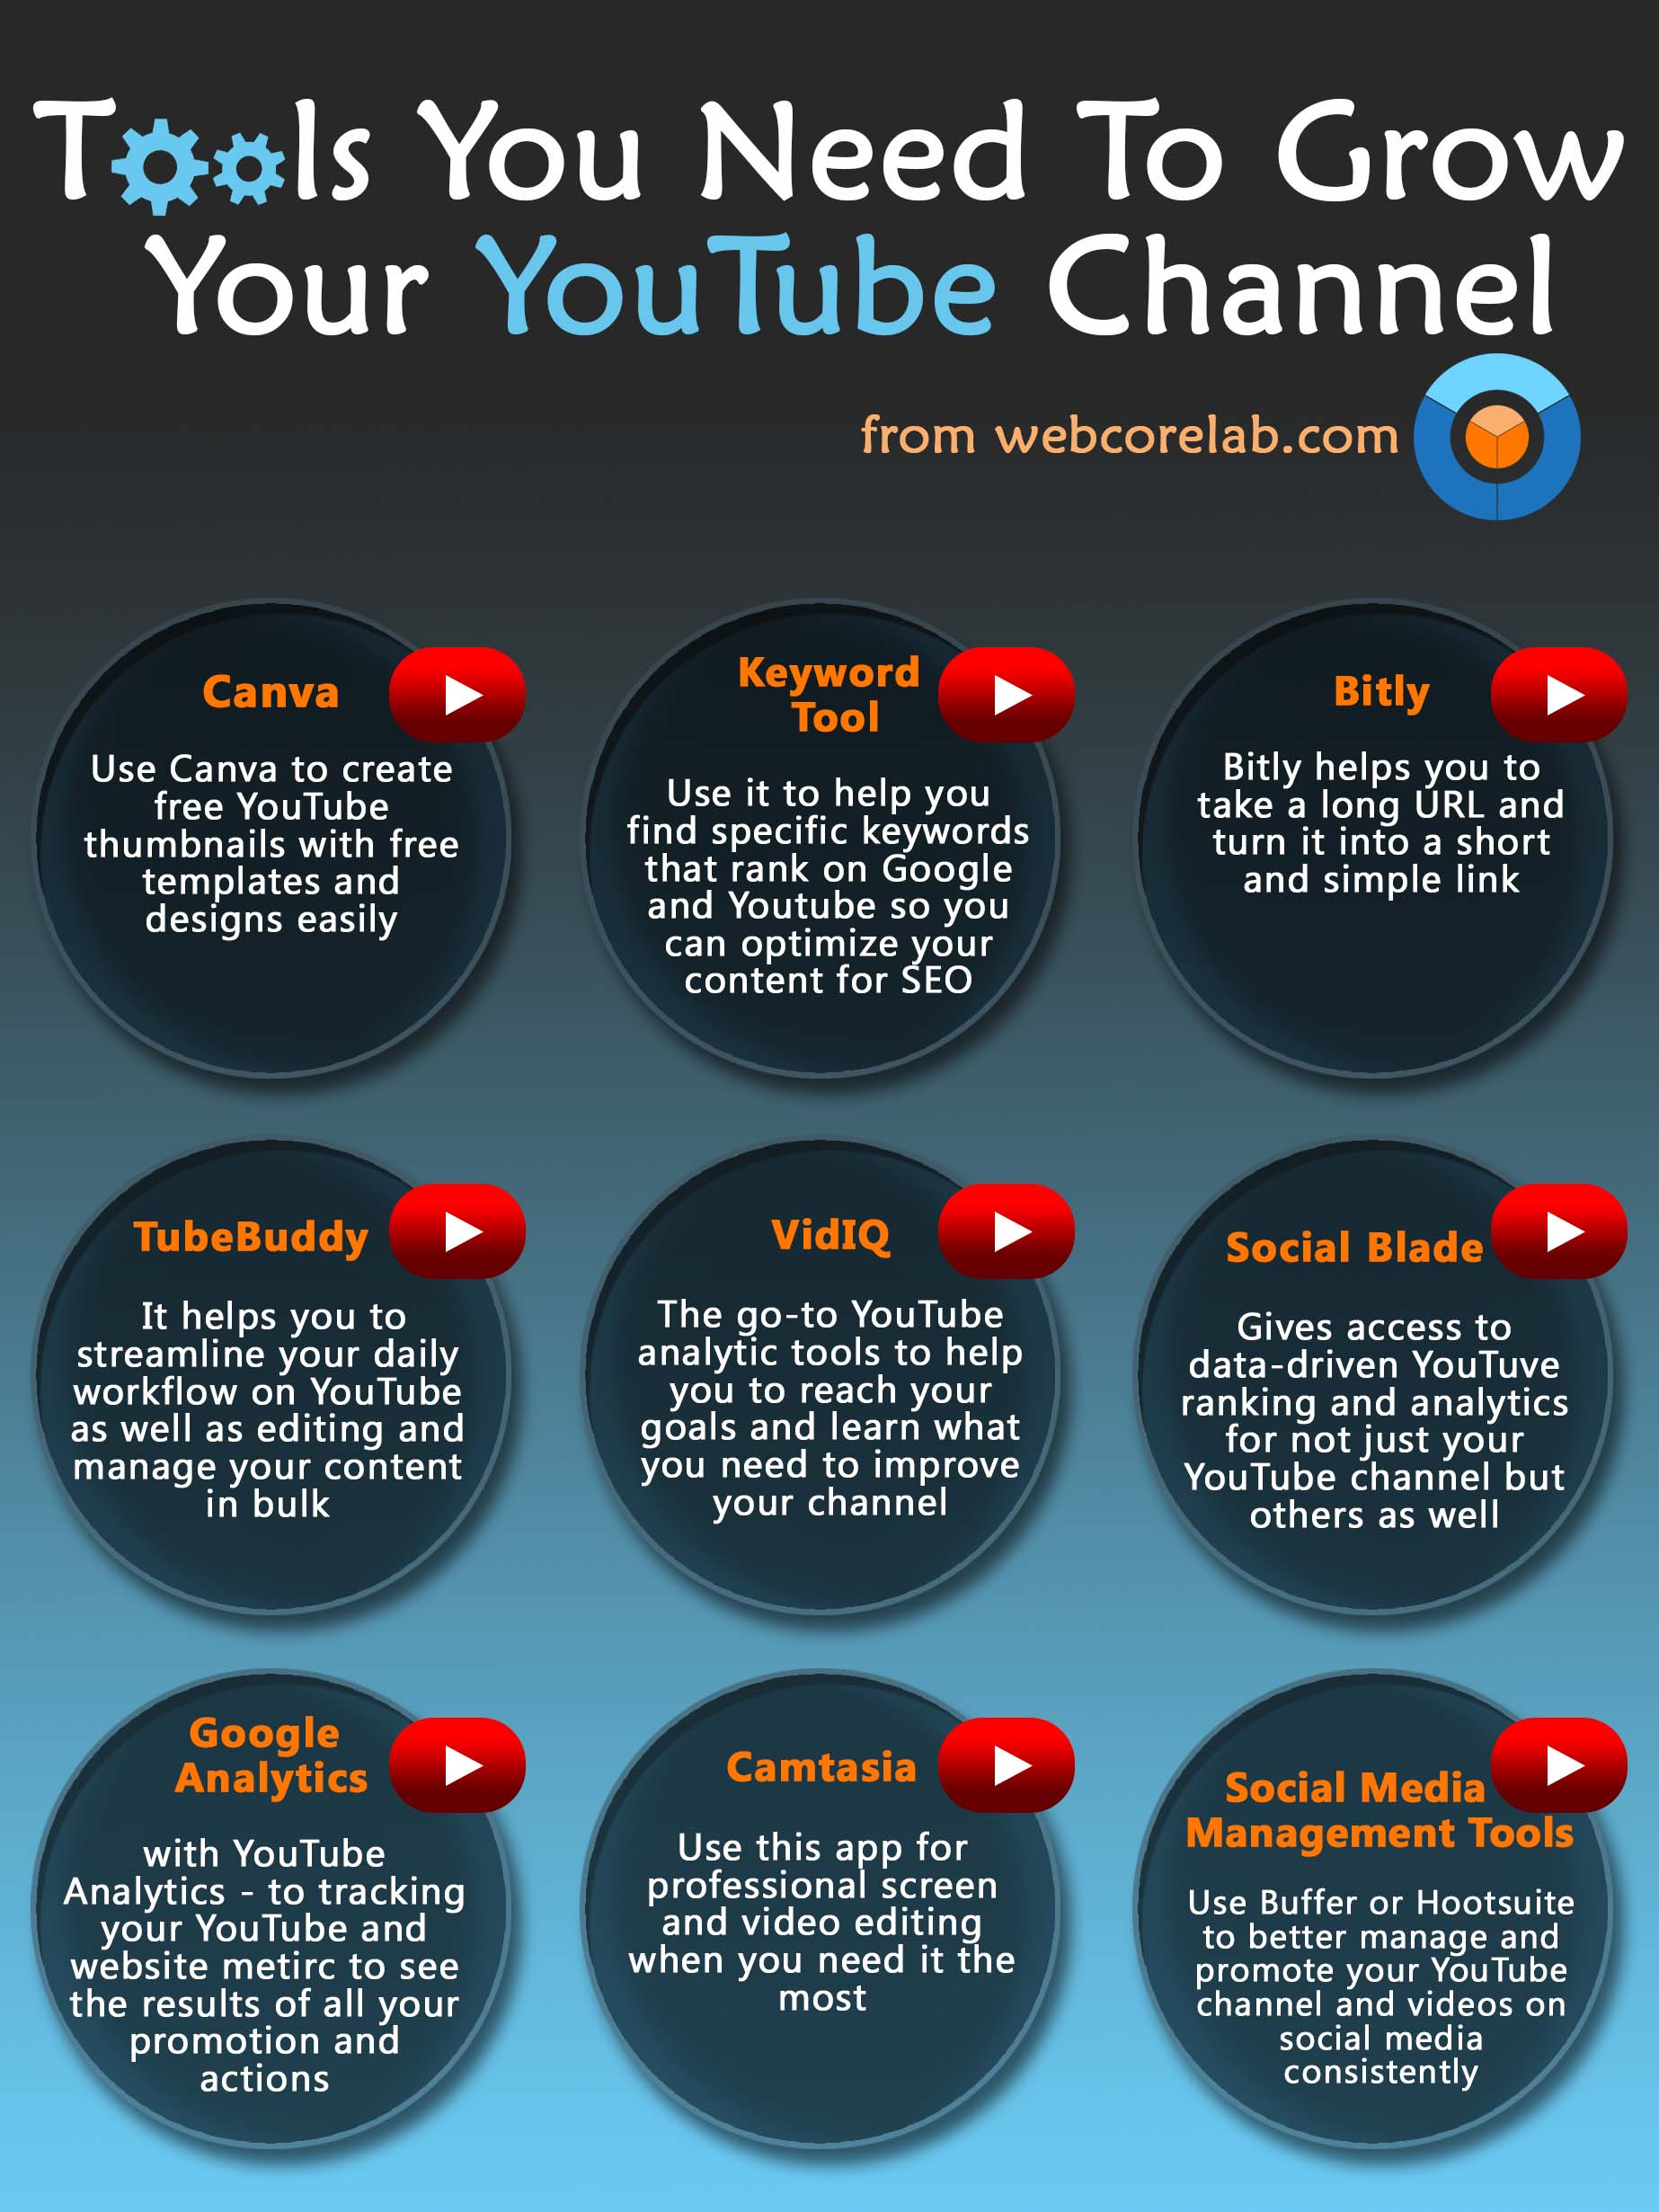 How to use YouTube for your business with top 10 tools?